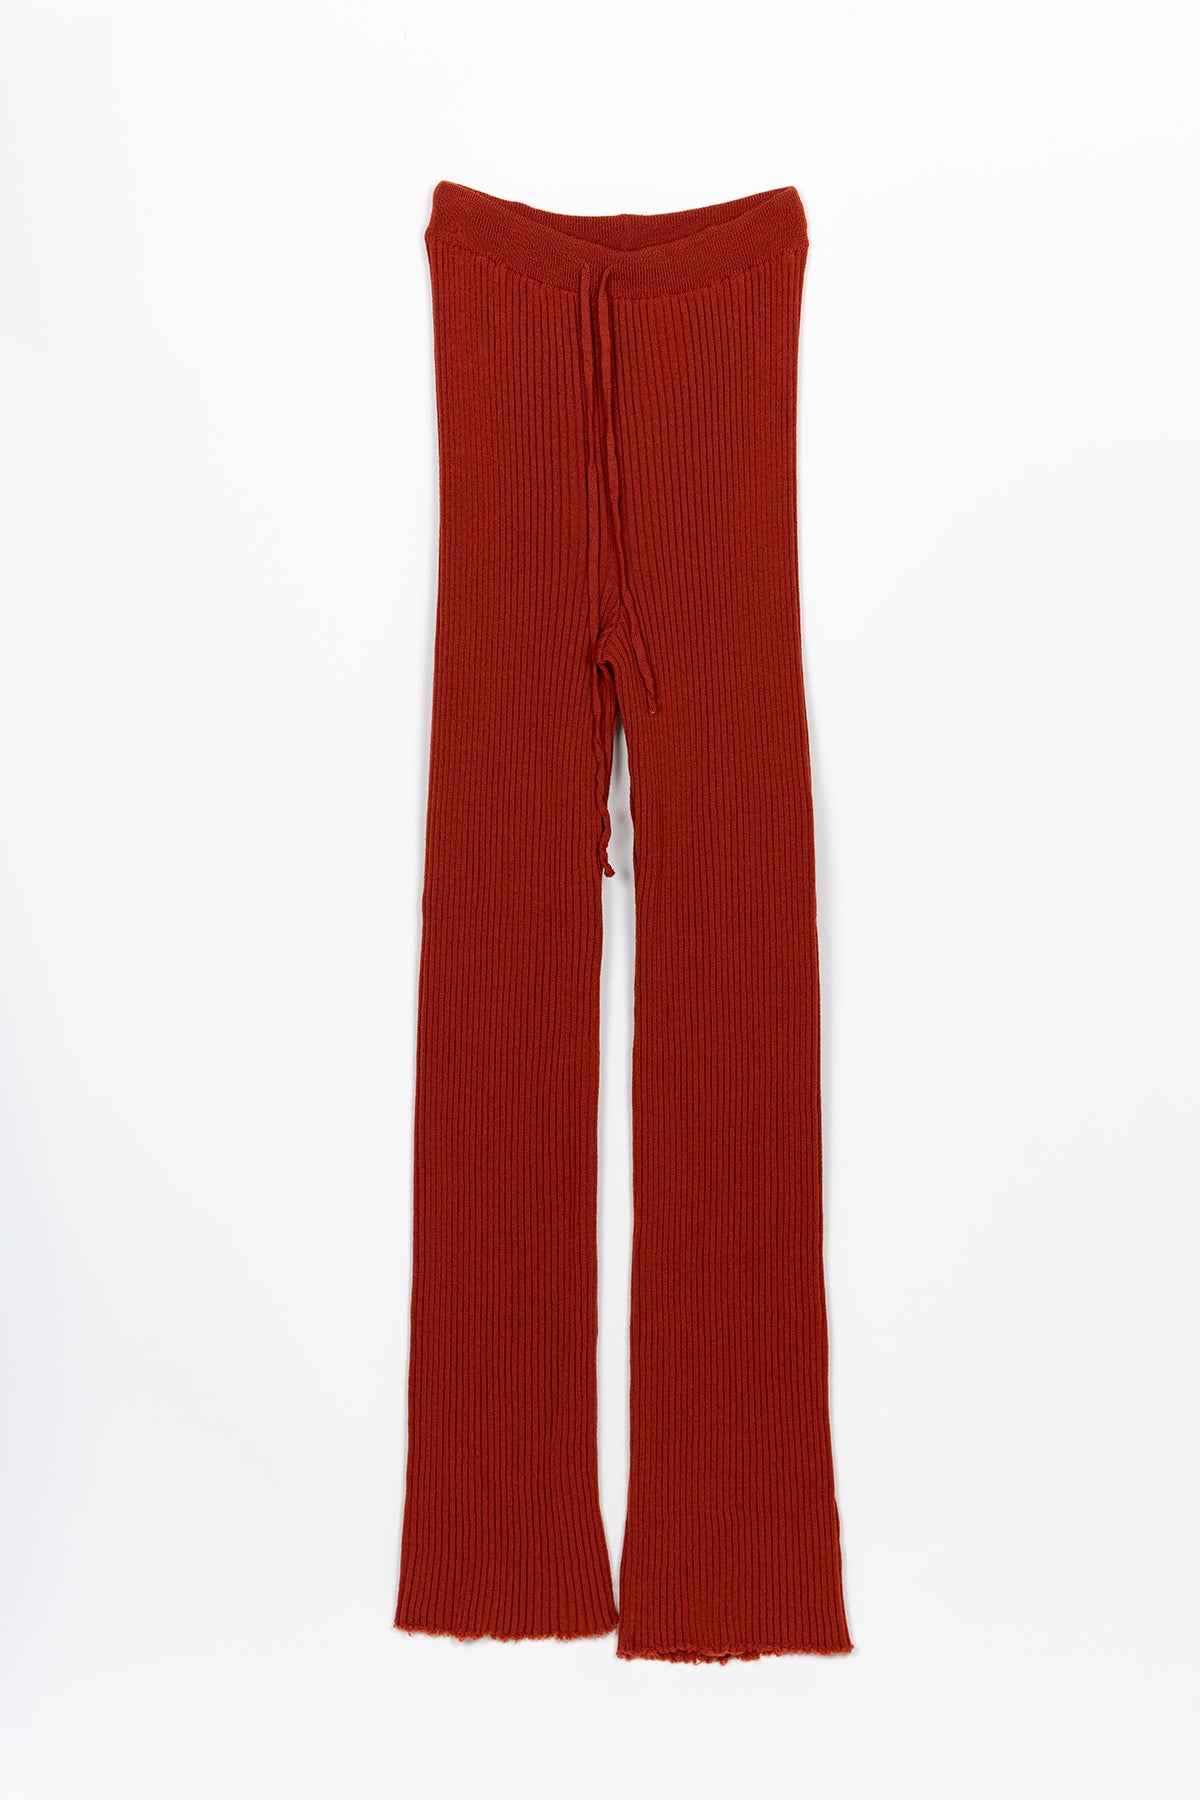 ORANGE KNIT TROUSERS